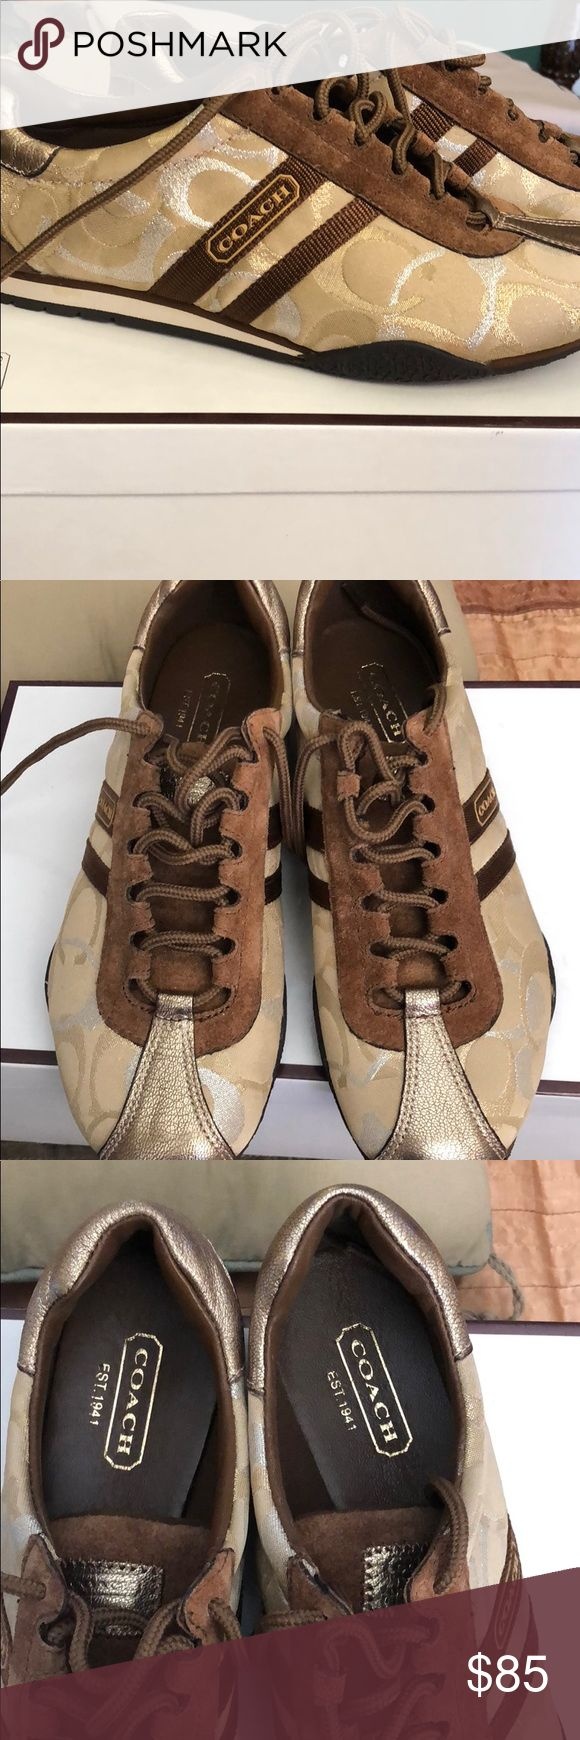 Coach tennis shoes!! Authentic Coach tennis shoes - barely worn. Looks brand new. No color fading. Coach Shoes Sneakers